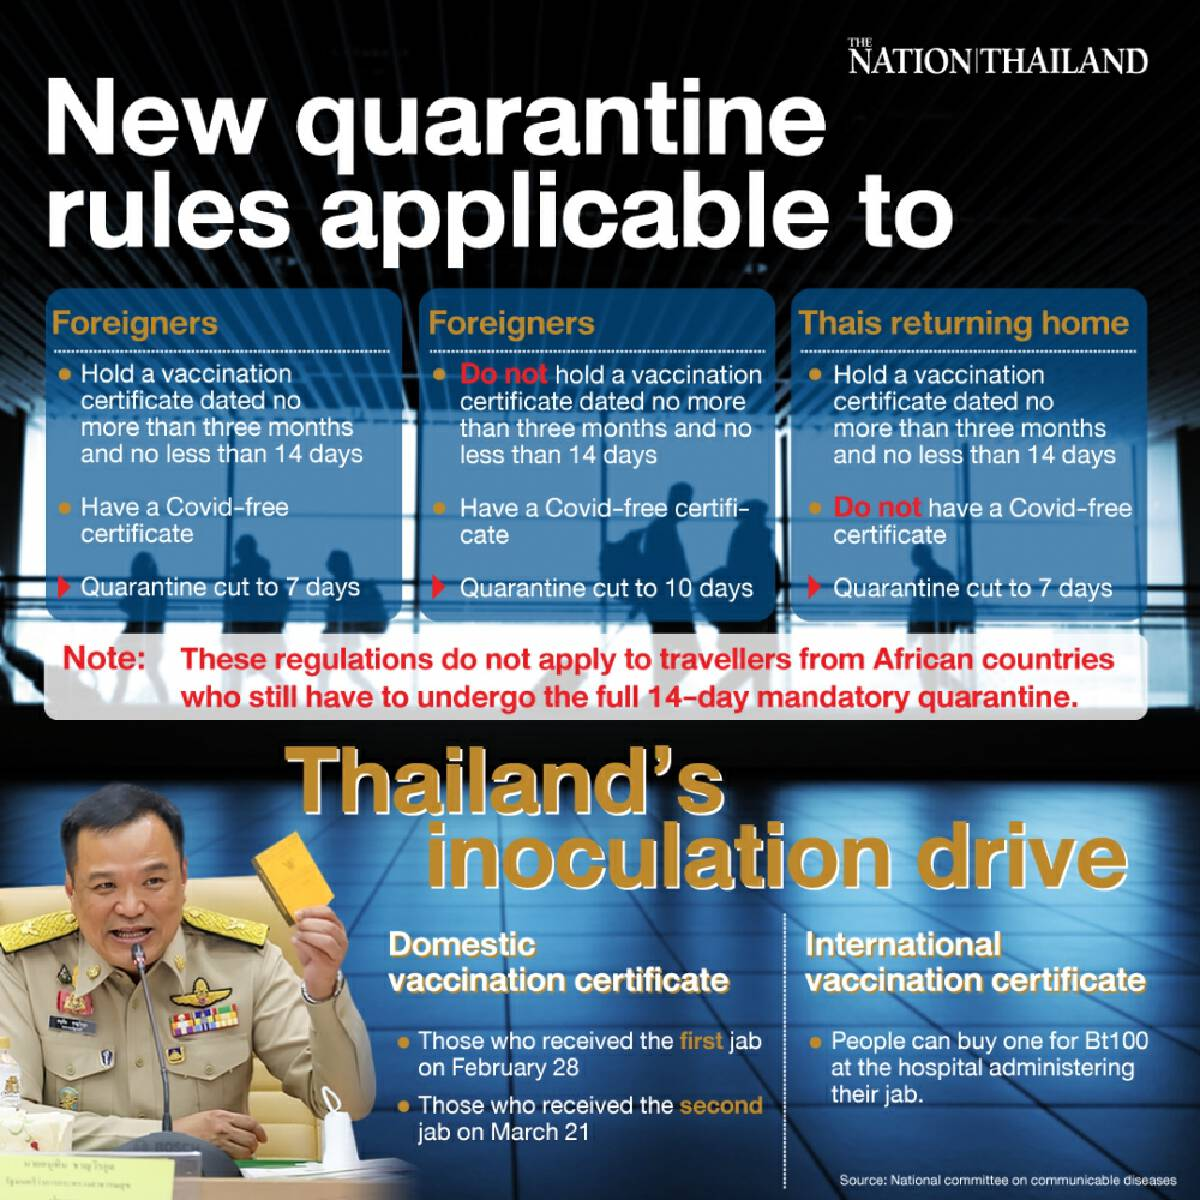 Thailand to ease quarantine rules for some arrivals